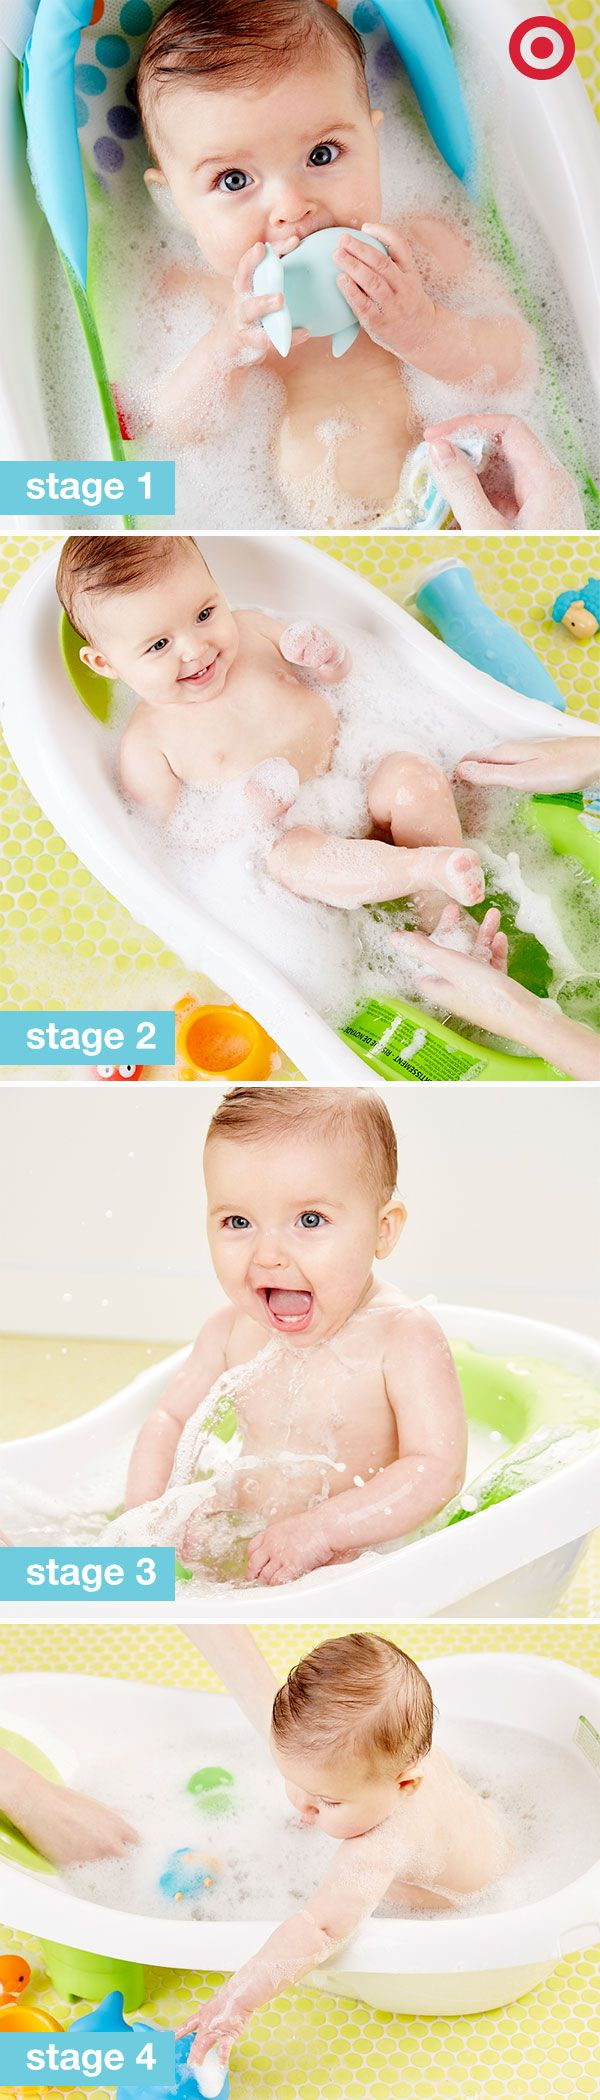 104 best Baby Bath Time images on Pinterest | Baby bath time, Baby ...